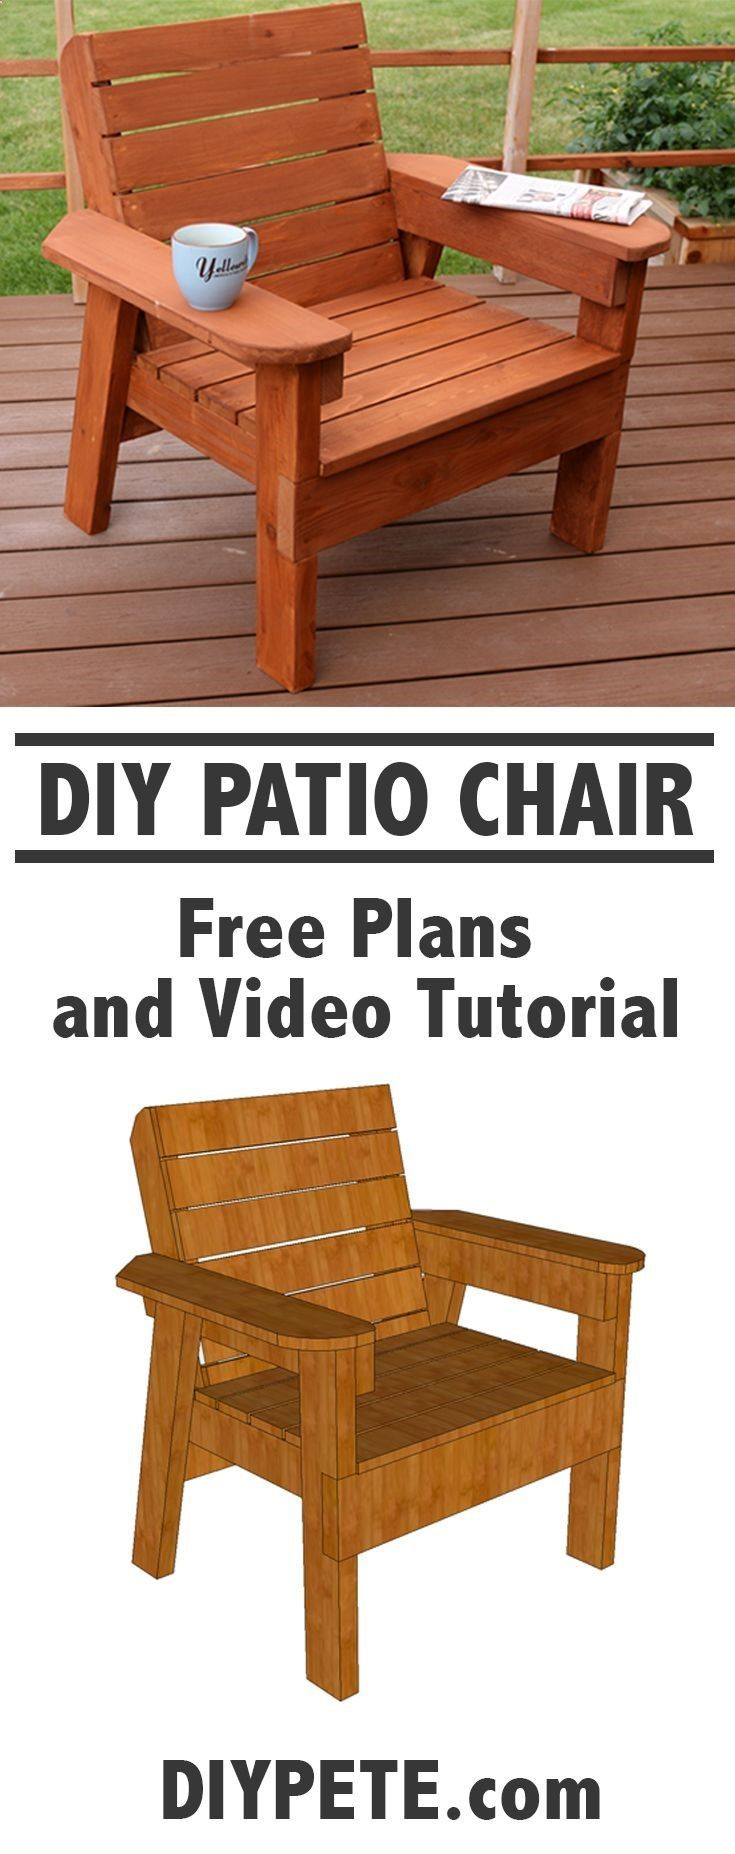 Plans of Woodworking Diy Projects - Simple to build DIY Patio Chair. Free plans, video tutorial, and a detailed post. Get A Lifetime Of Project Ideas & Inspiration! #simplewoodworkingideas